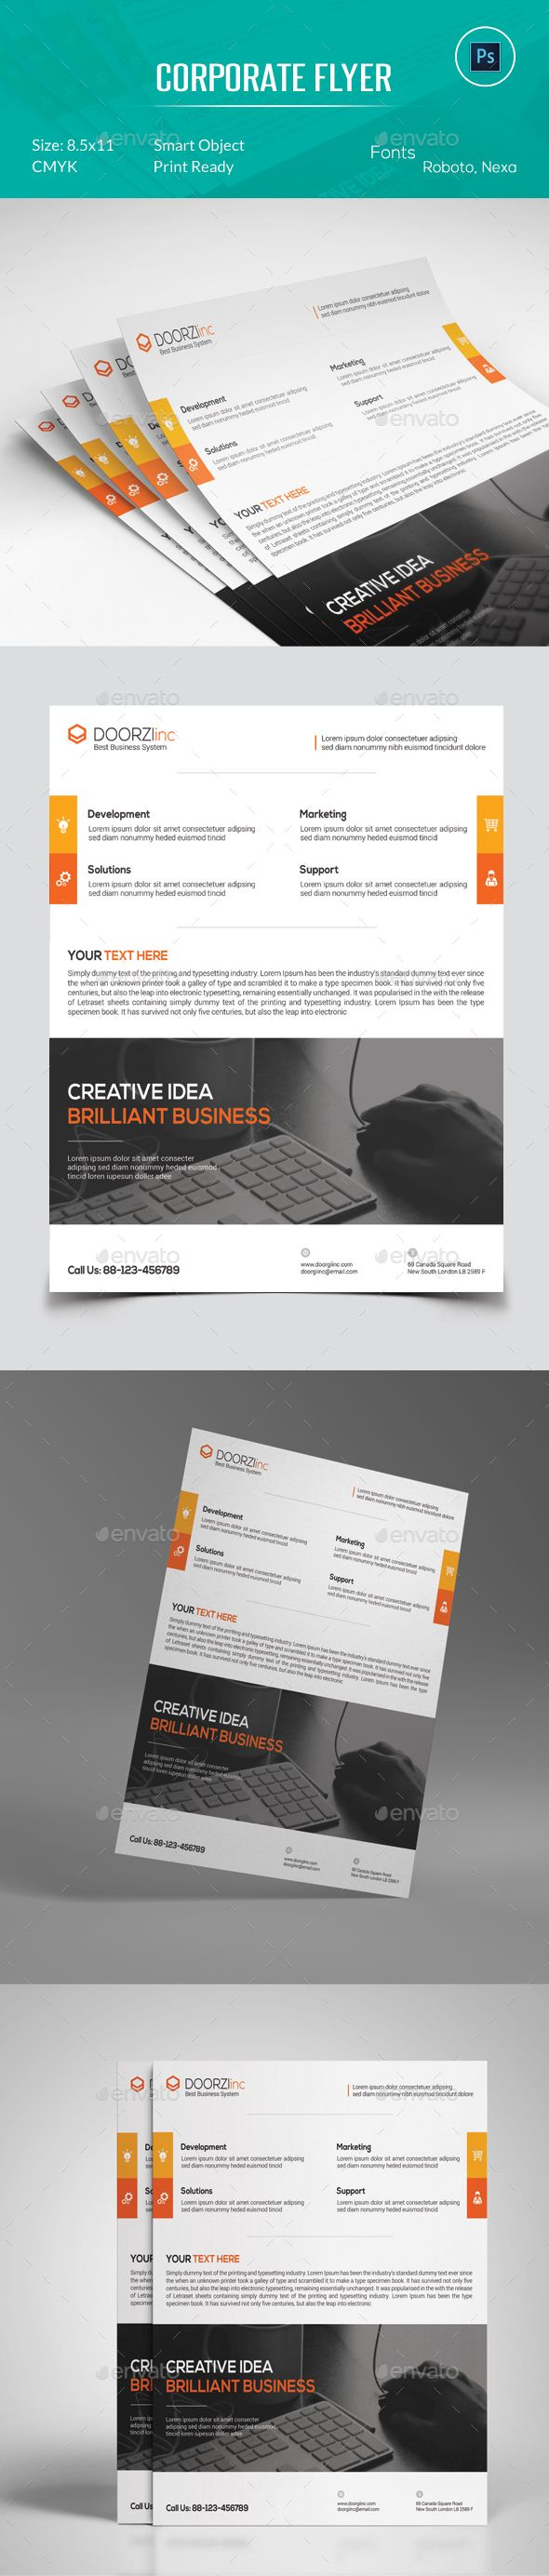 Famous Marketing One Pager Template Gallery - Resume Template ...